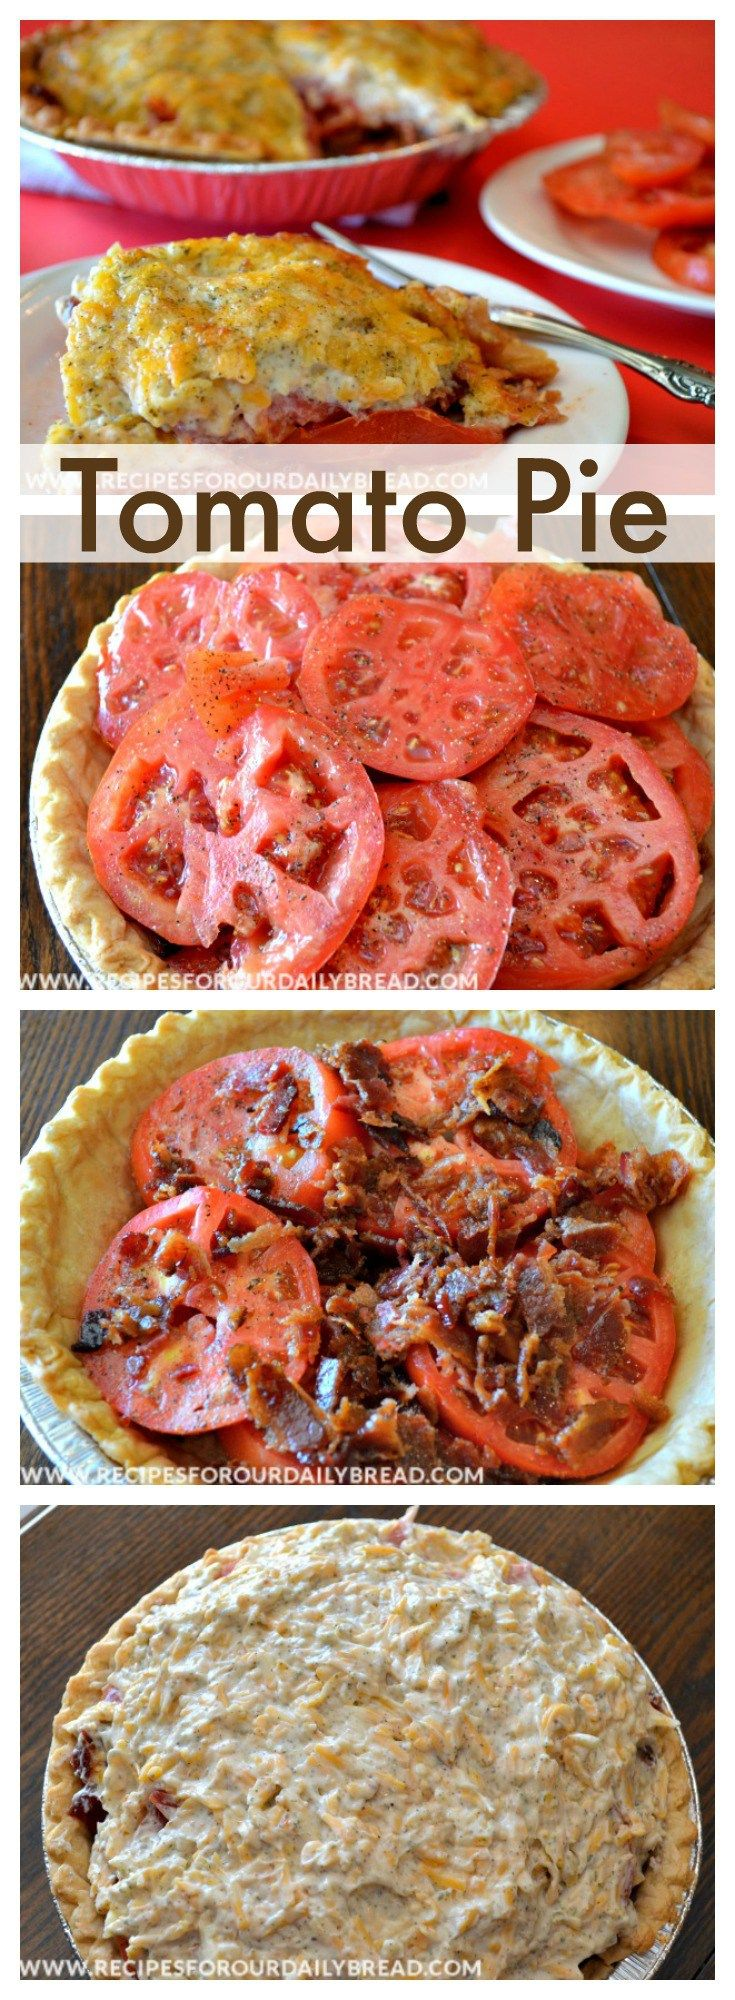 HOW TO MAKE THE BEST TOMATO PIE WITH BACON BASIL